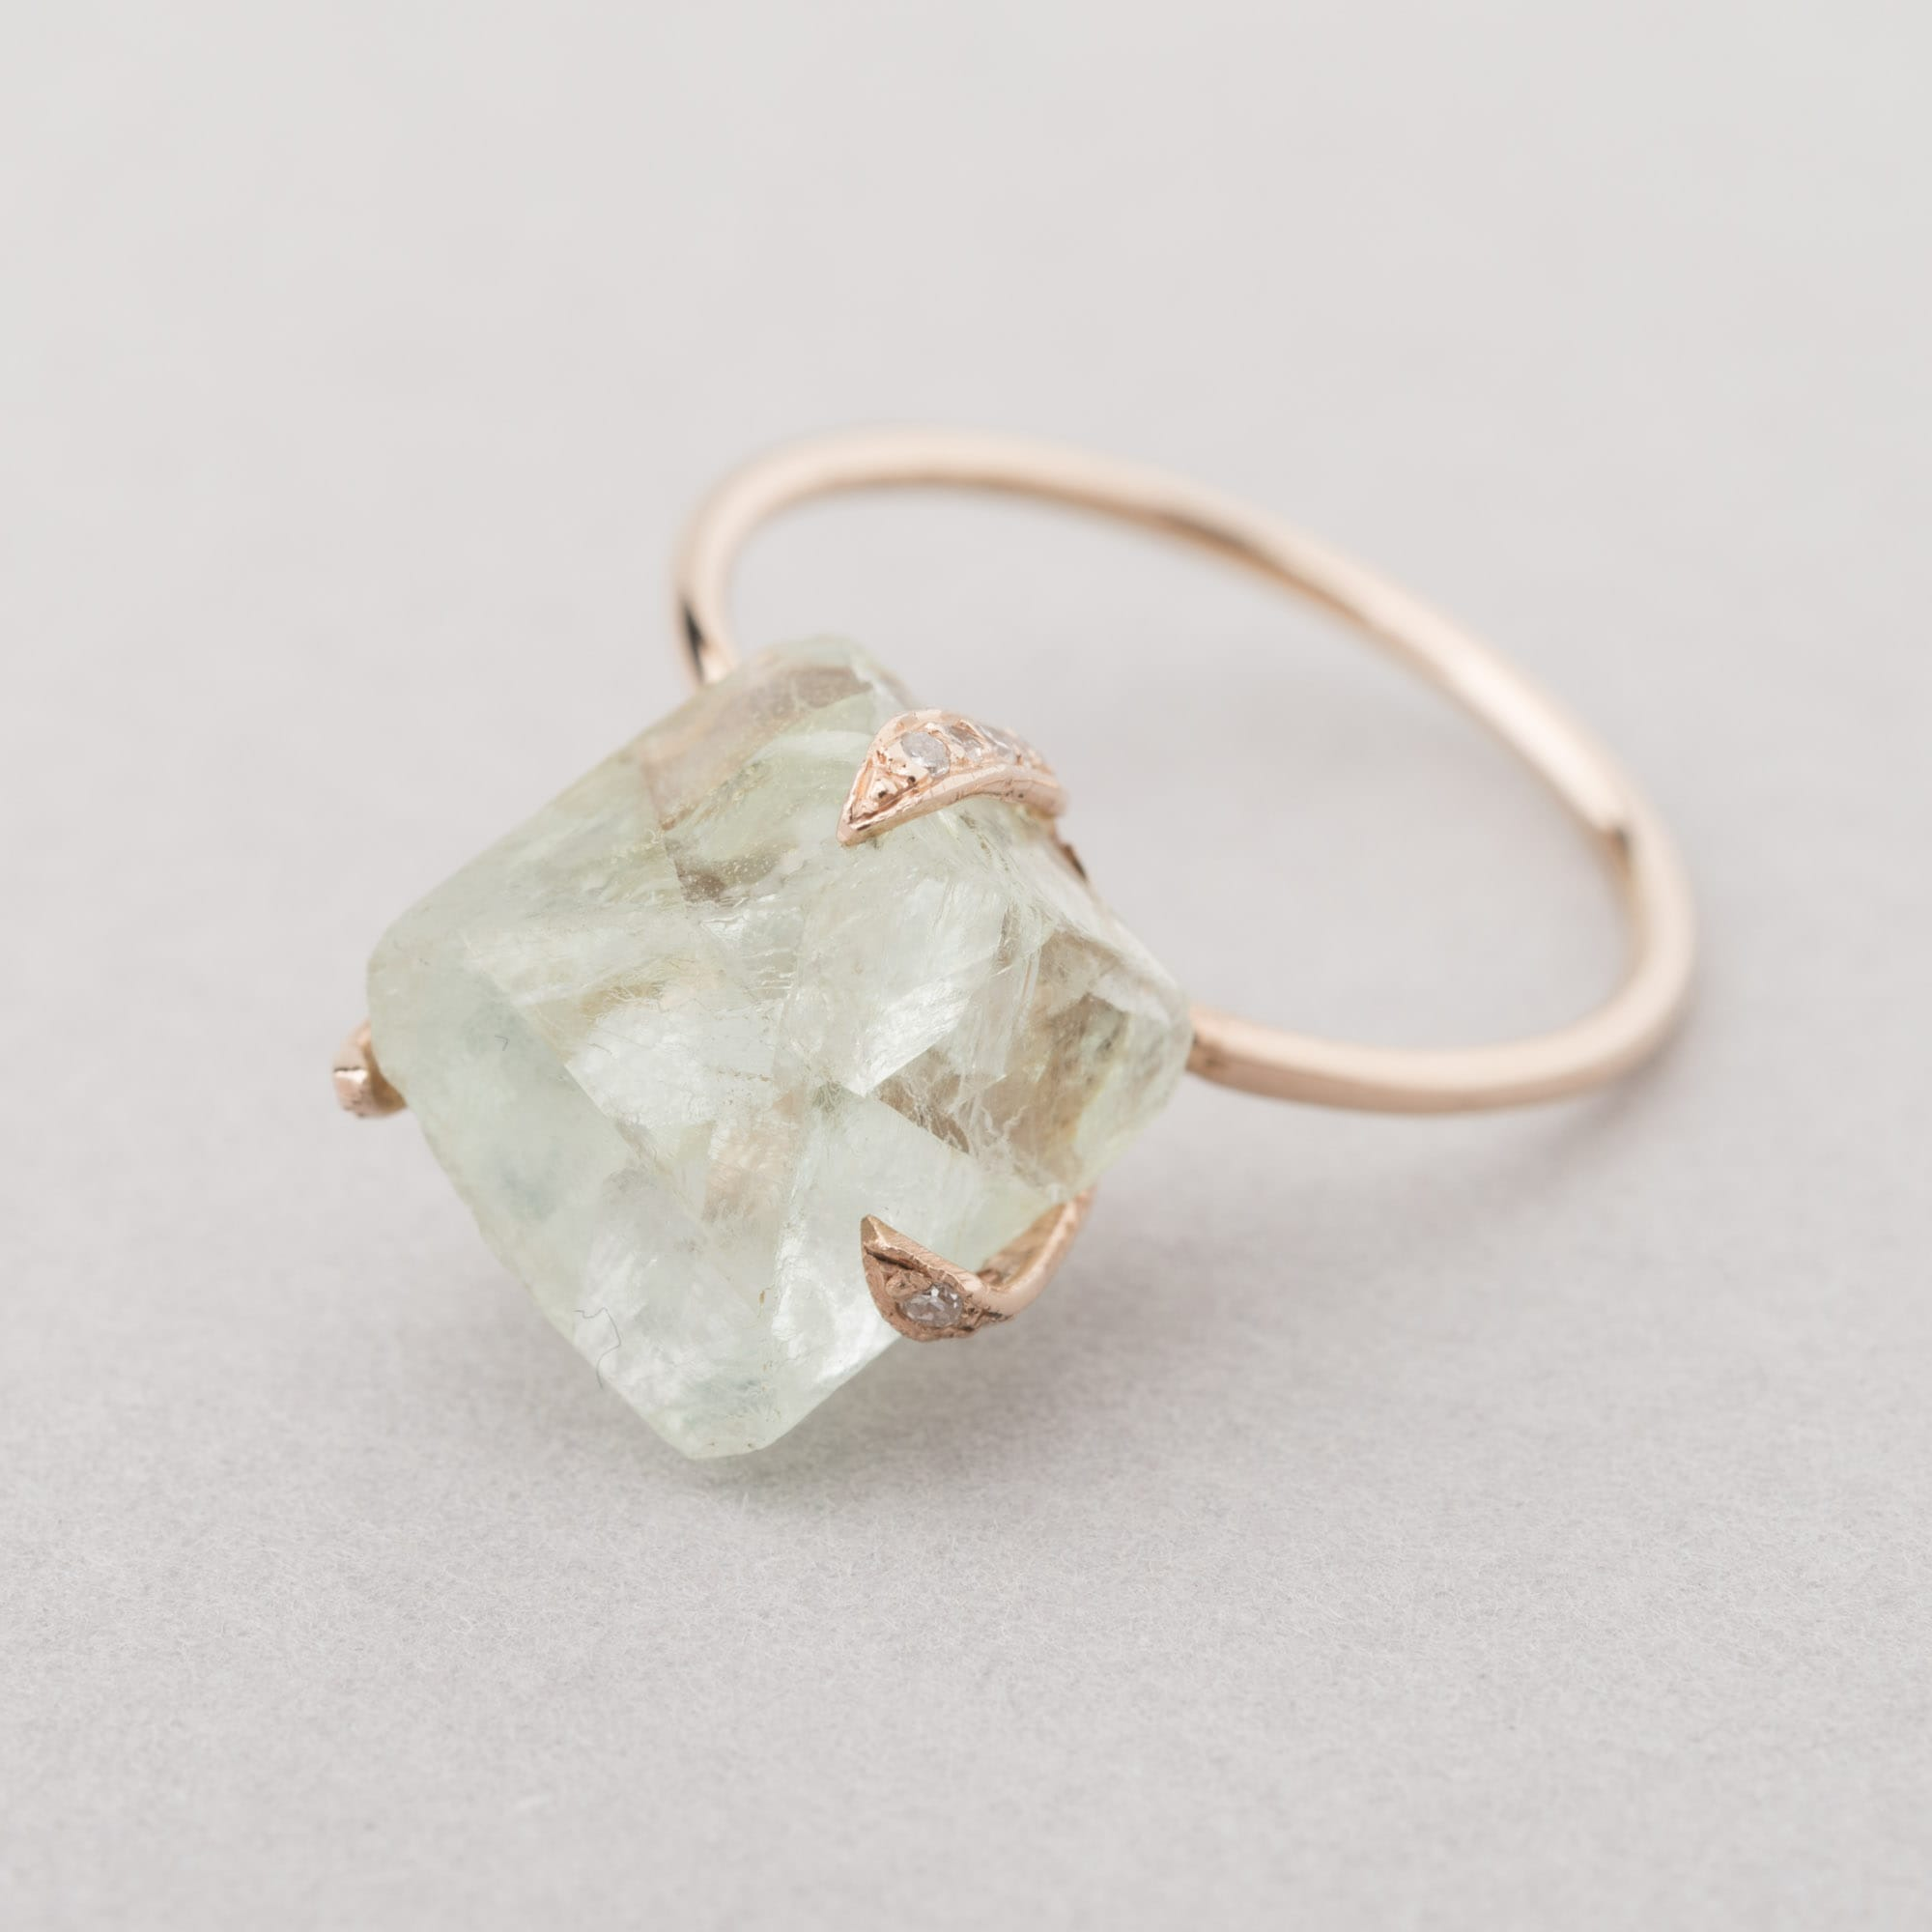 house only shops ring of fluorite sfr copper maxi for at products buy rings and sizeable